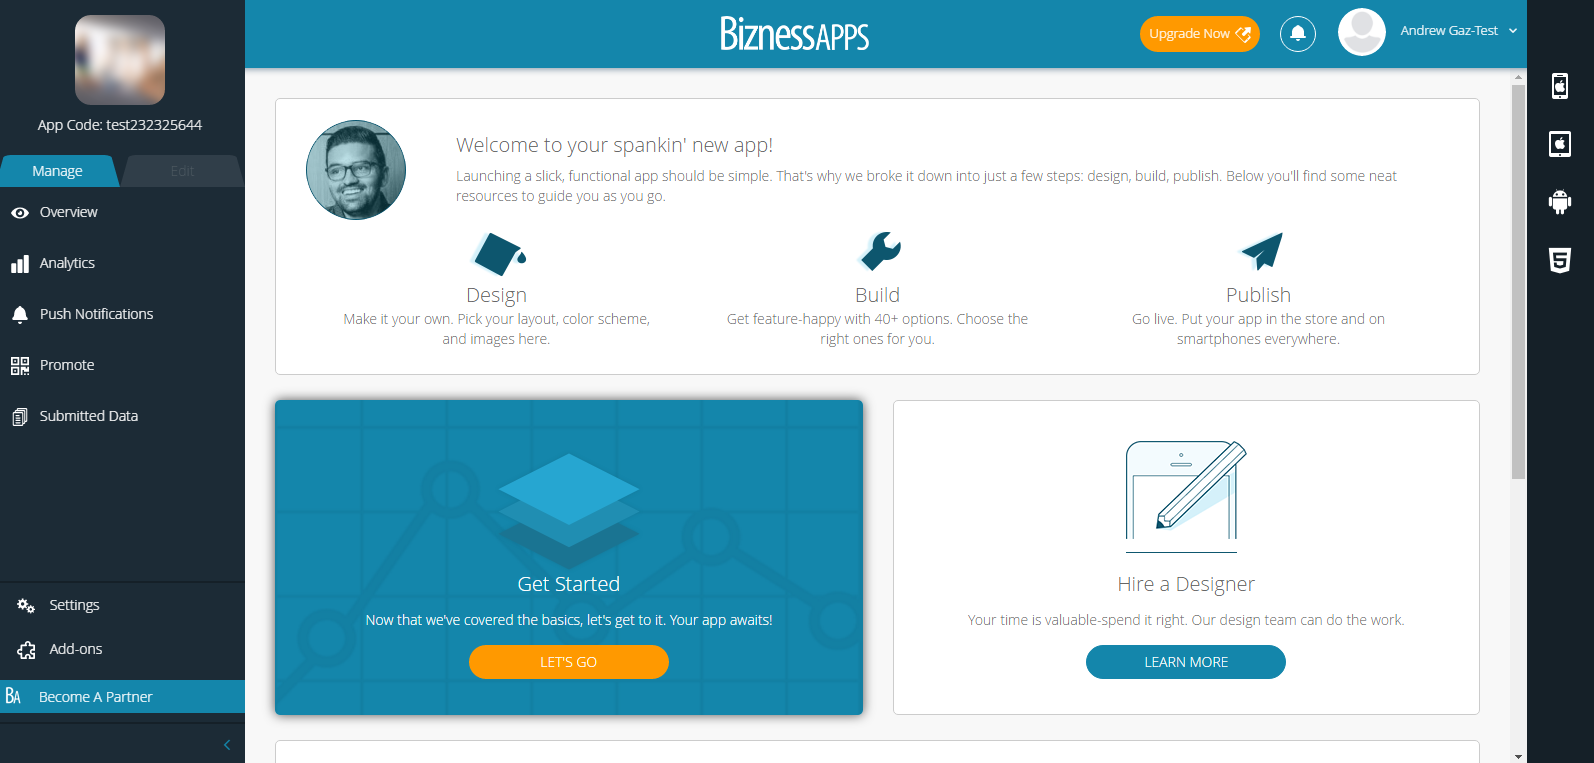 How to Build Your Own App Using Bizness Apps - Finish Up